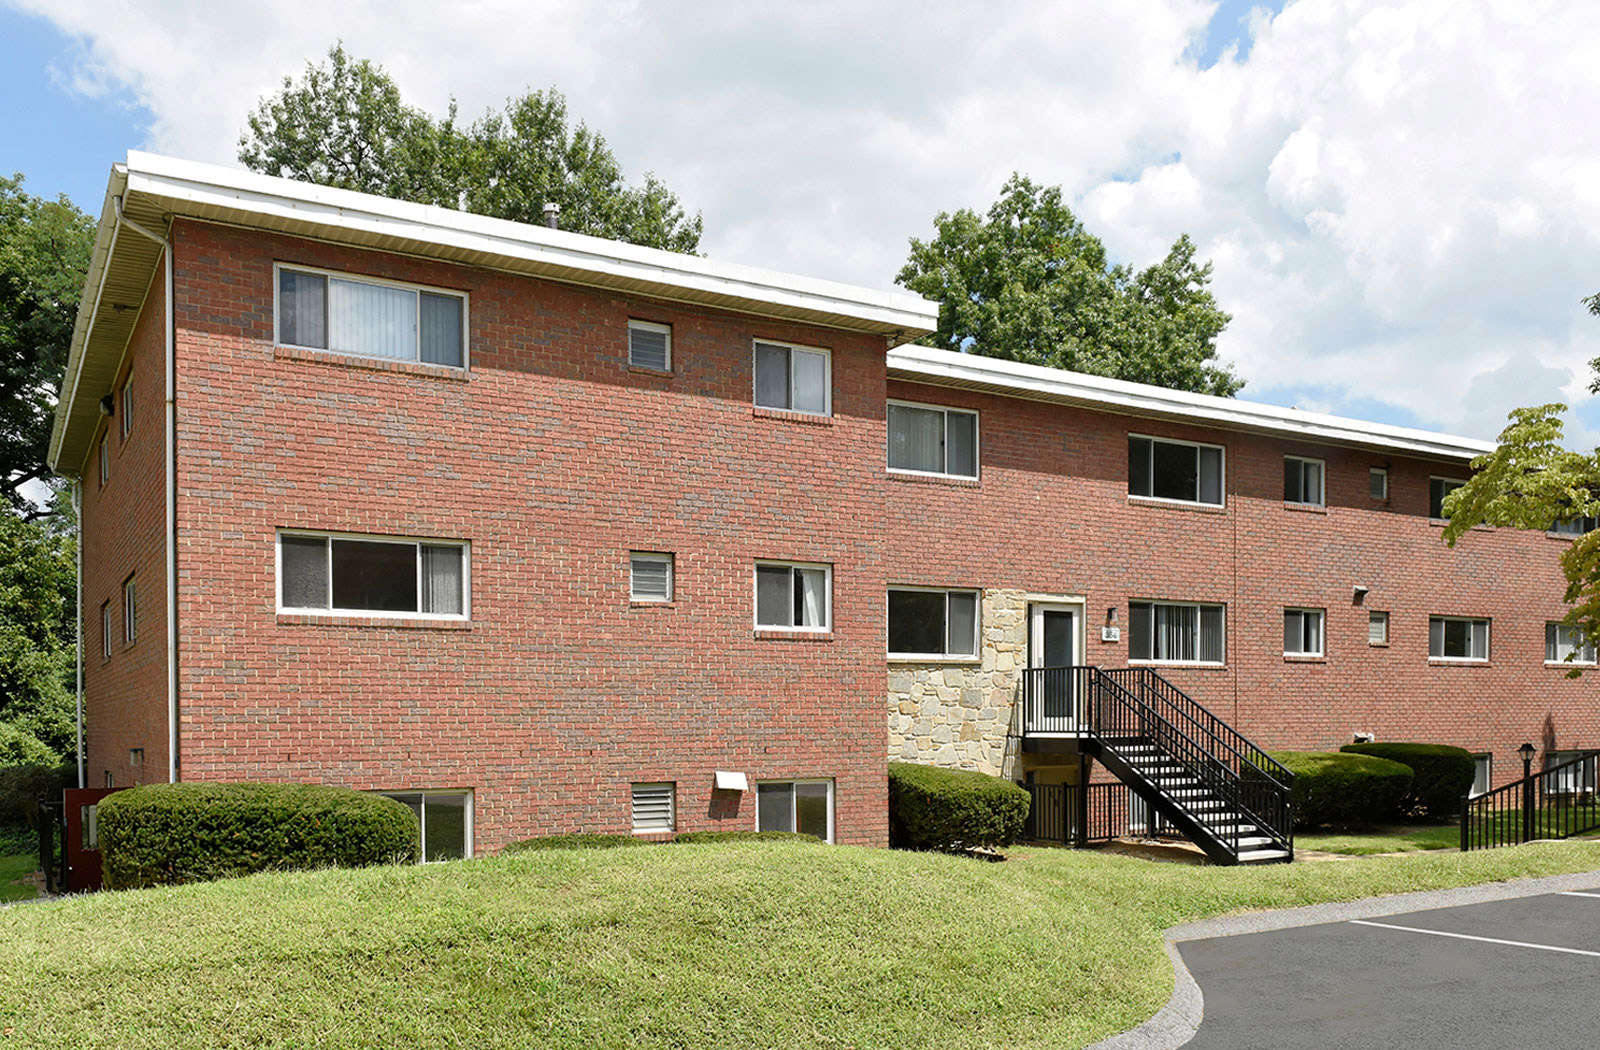 2 bedroom apartments in towson md - 28 images - the quarters at ...